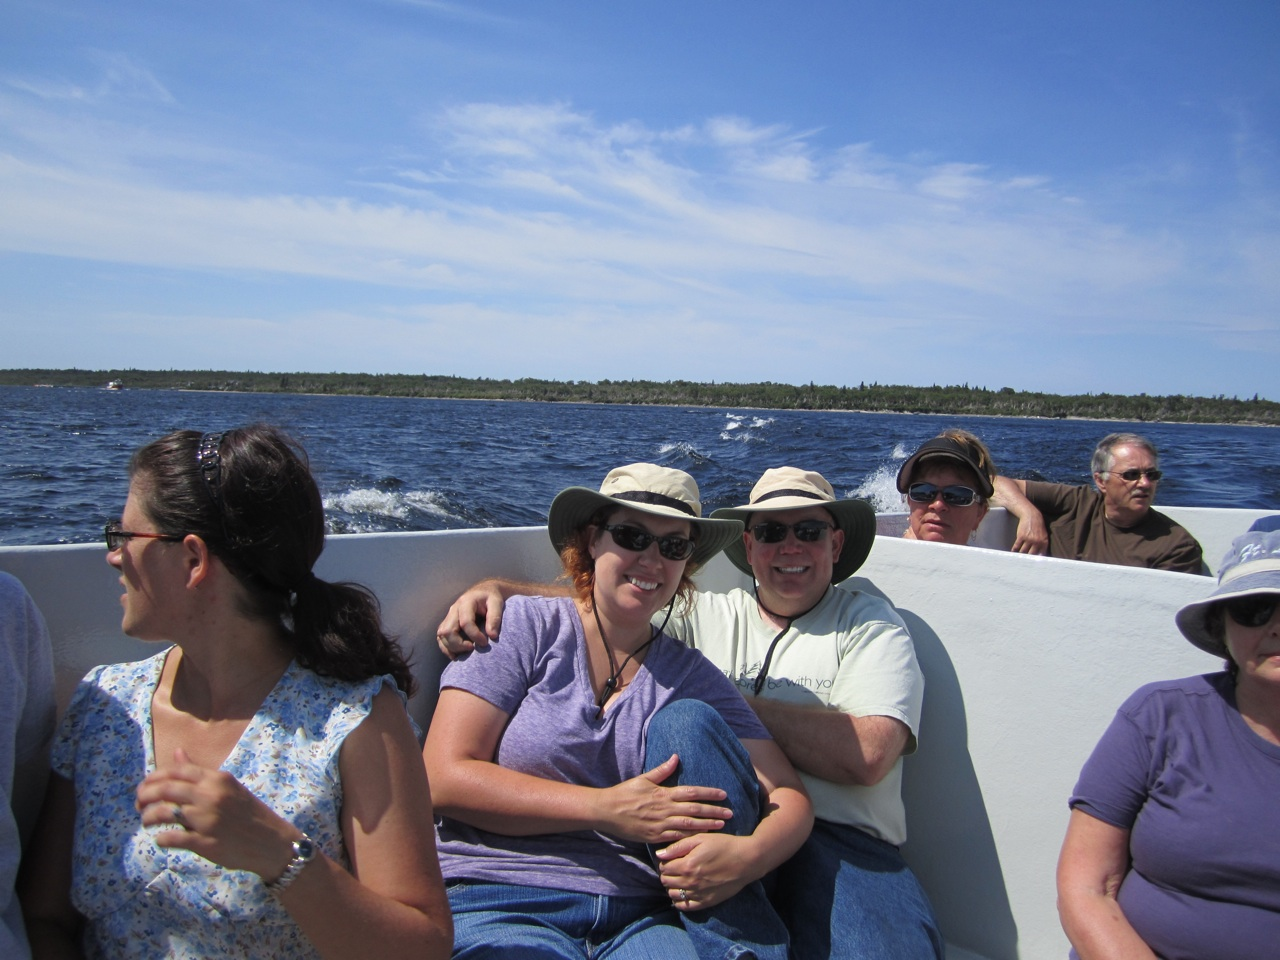 David And Brenda On The Boat Tour Of The Fjord In The Western Brook Pond.